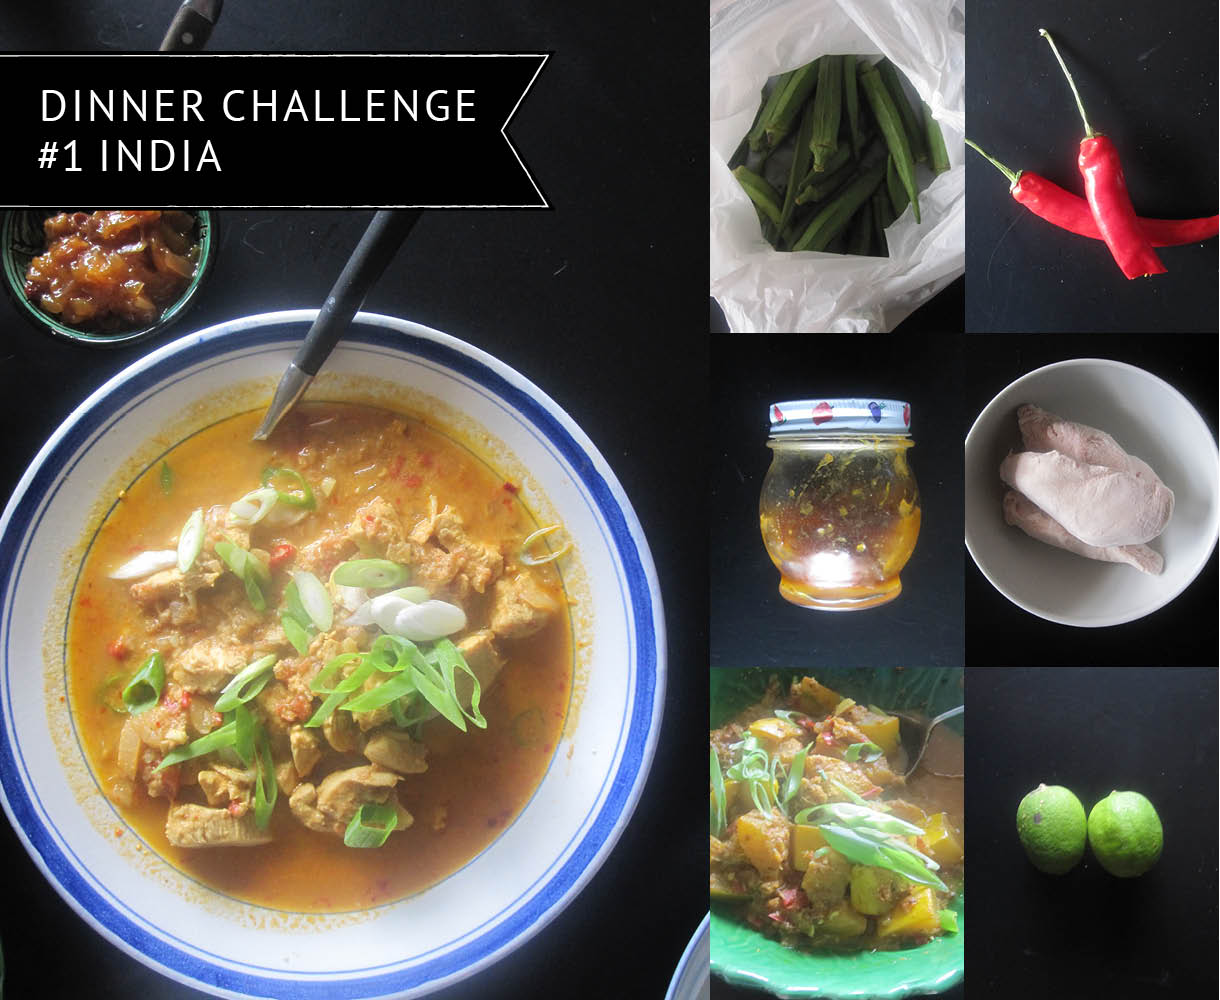 Empty the Fridge - Dinner challenge 1 - India